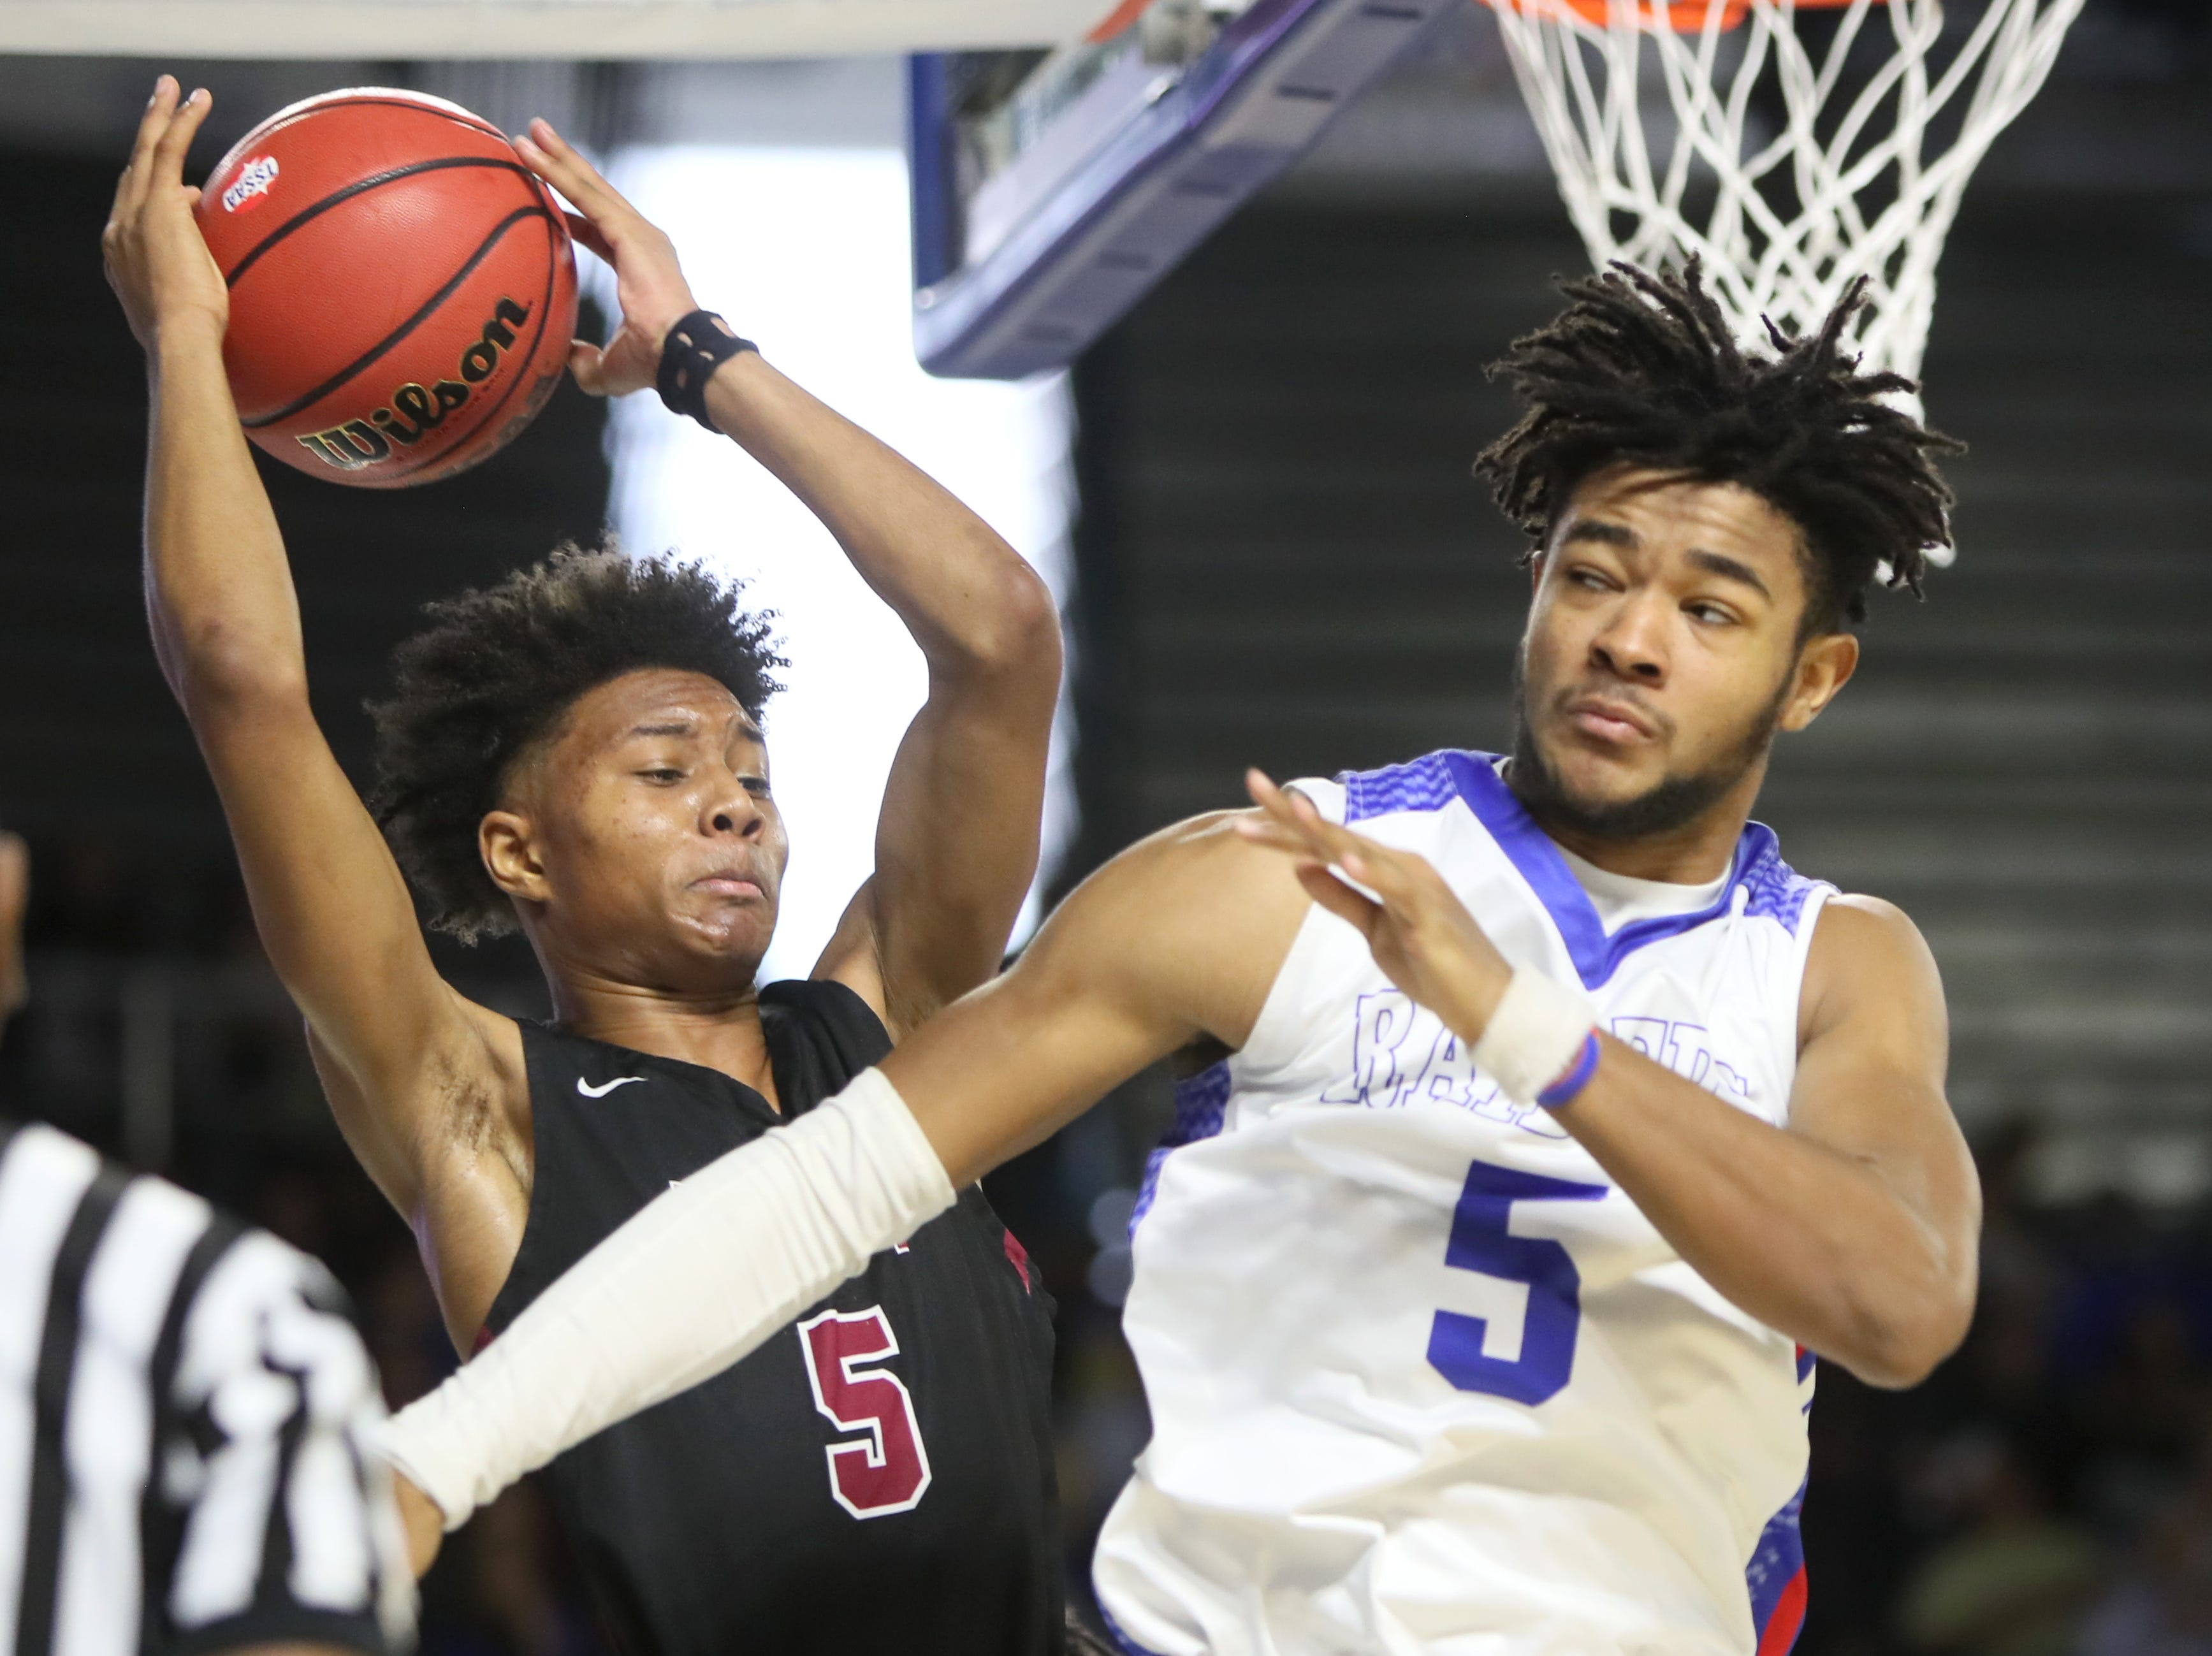 Memphis East's Tadarius Jacobs throws the ball off Cleveland's Darius Howard while falling out of bounds during the TSSAA Division I basketball state tournament at the Murphy Center in Murfreesboro, Tenn. on Thursday, March 14, 2019.